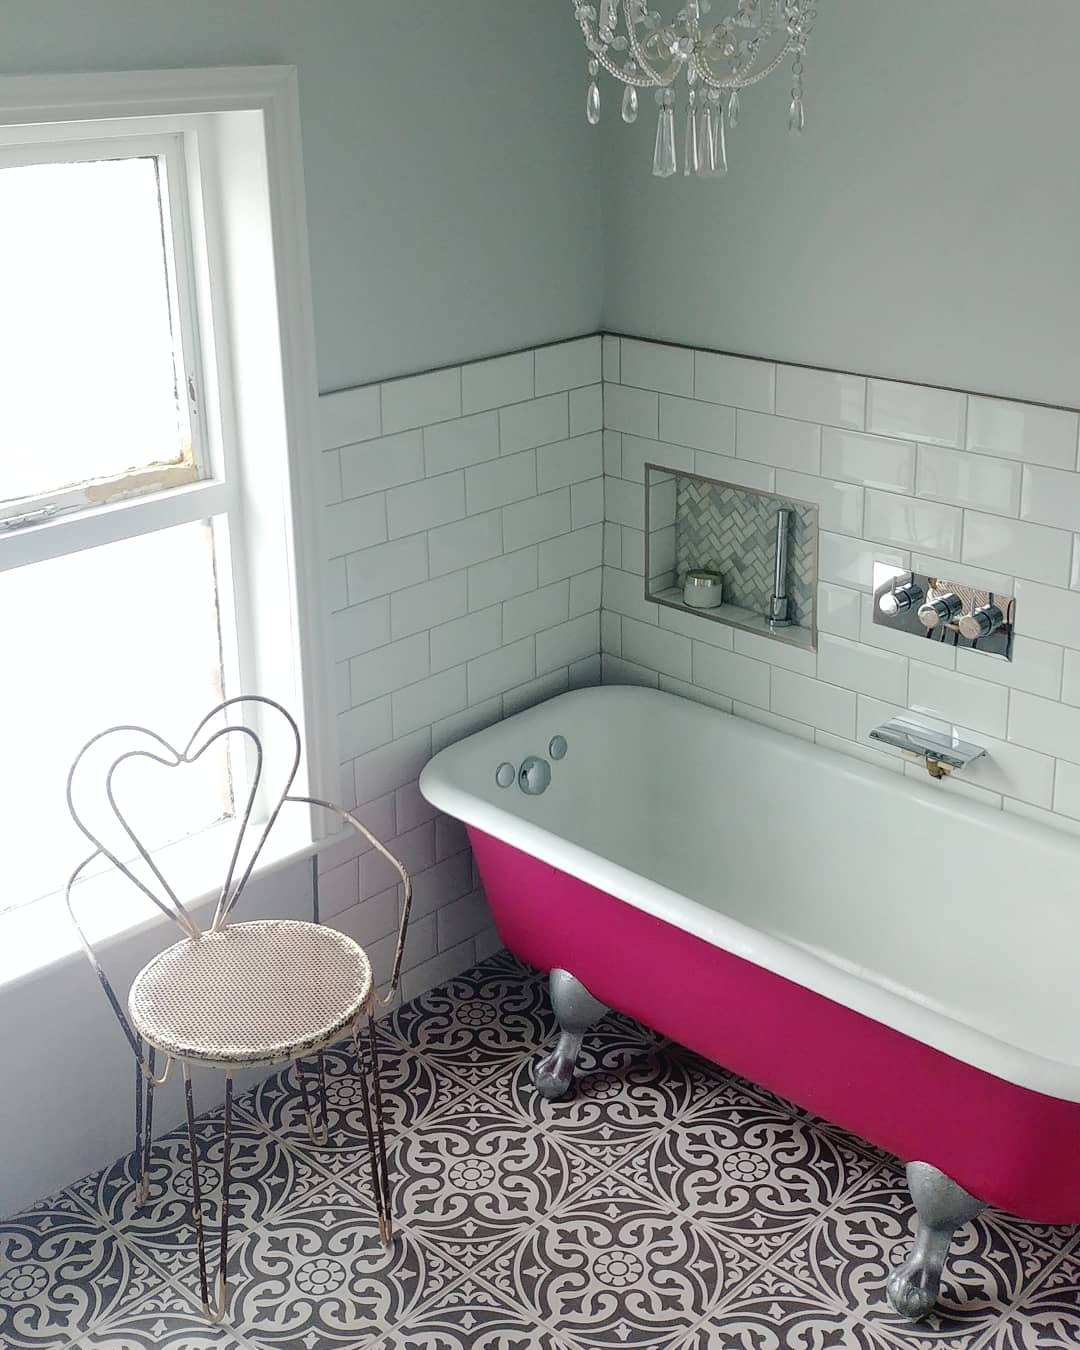 My new favourite room in our house (and the kitchen gives the bathroom a good run for its money!)